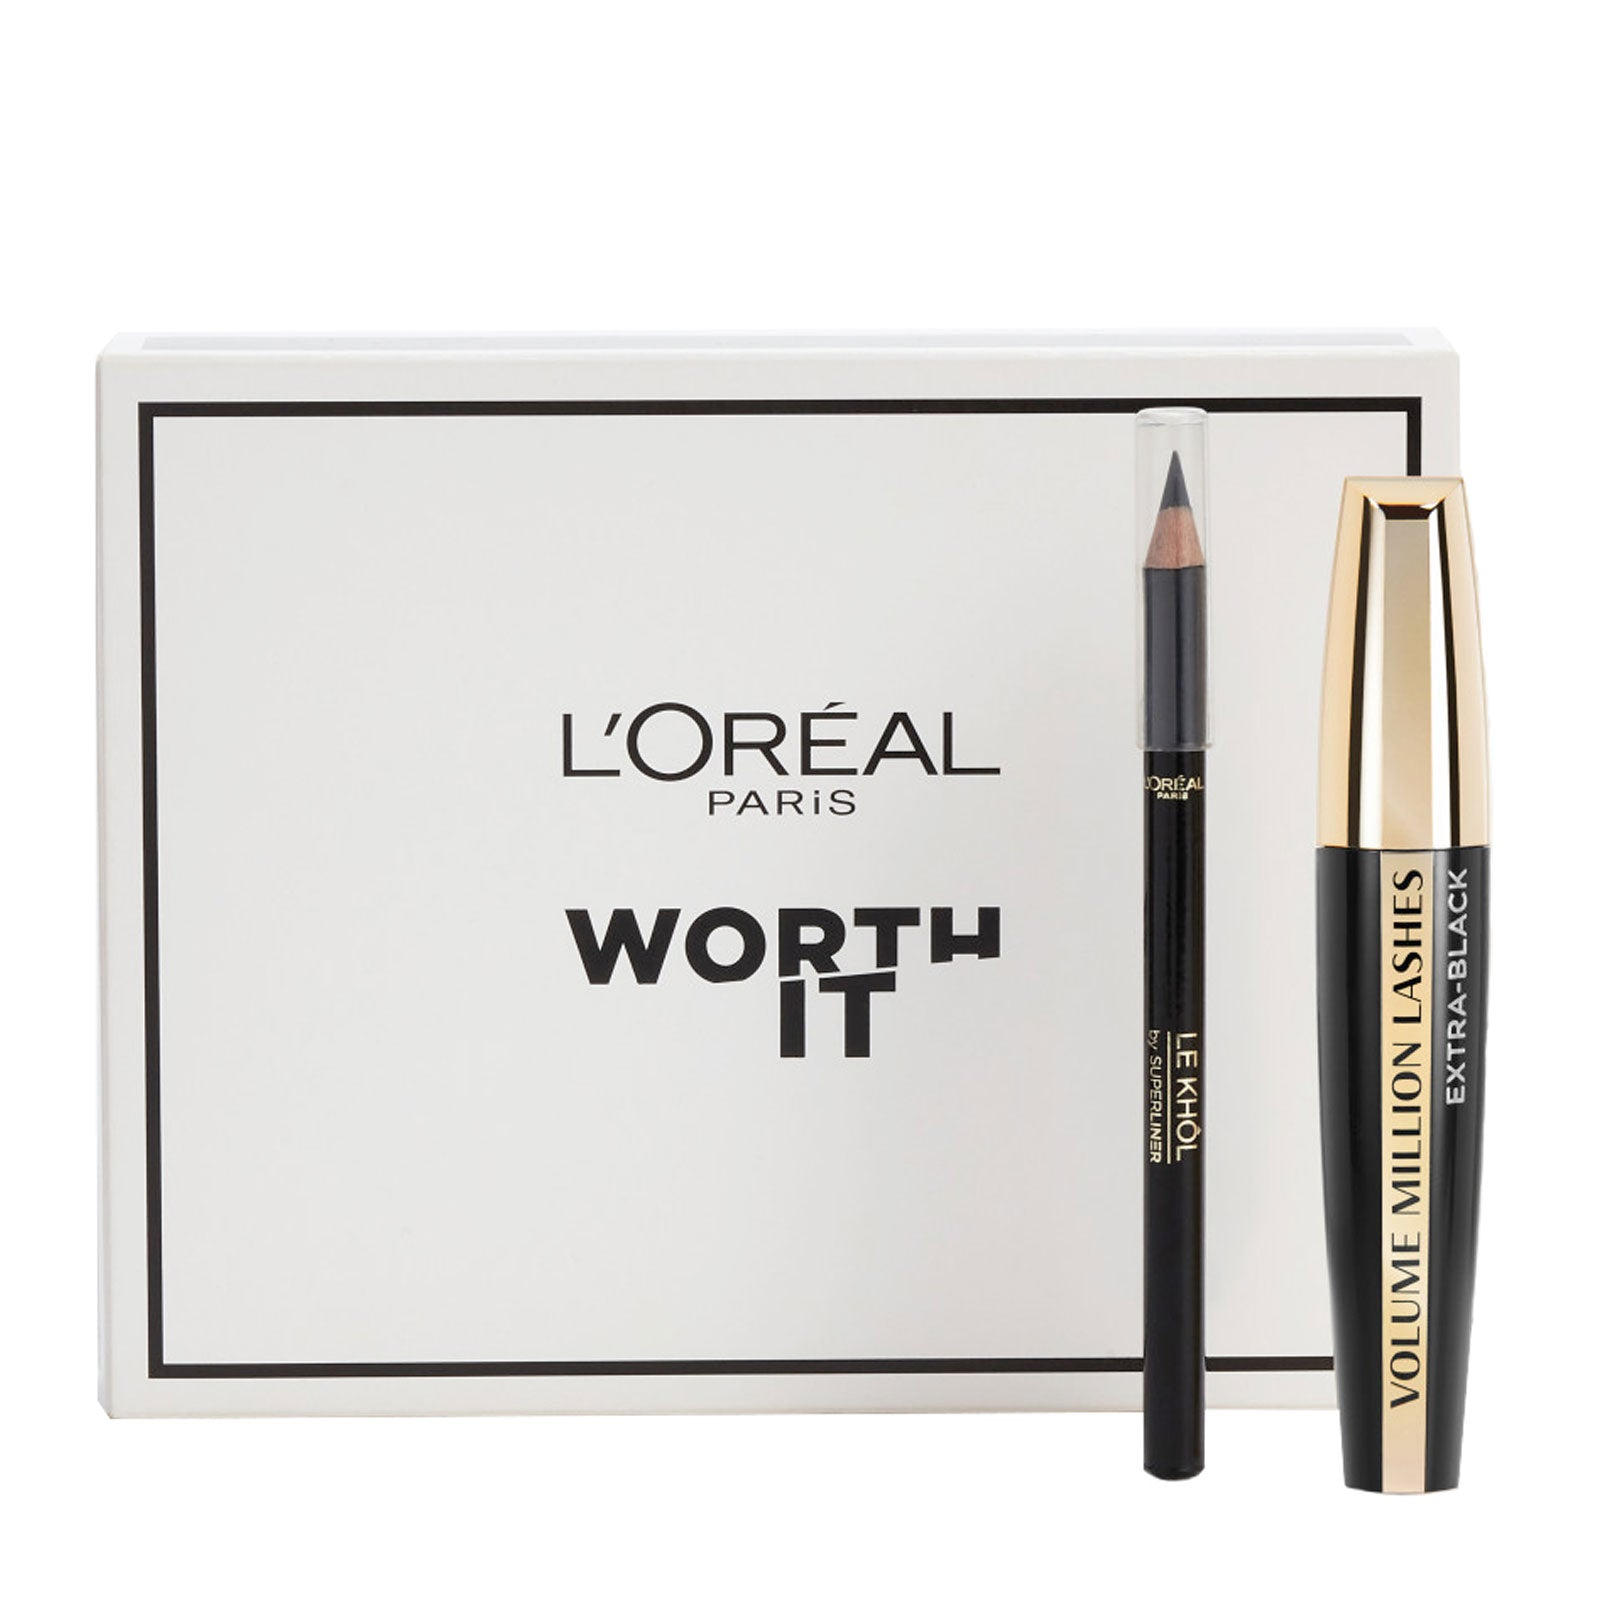 L'Oréal Paris Mascara Eye Makeup Kit